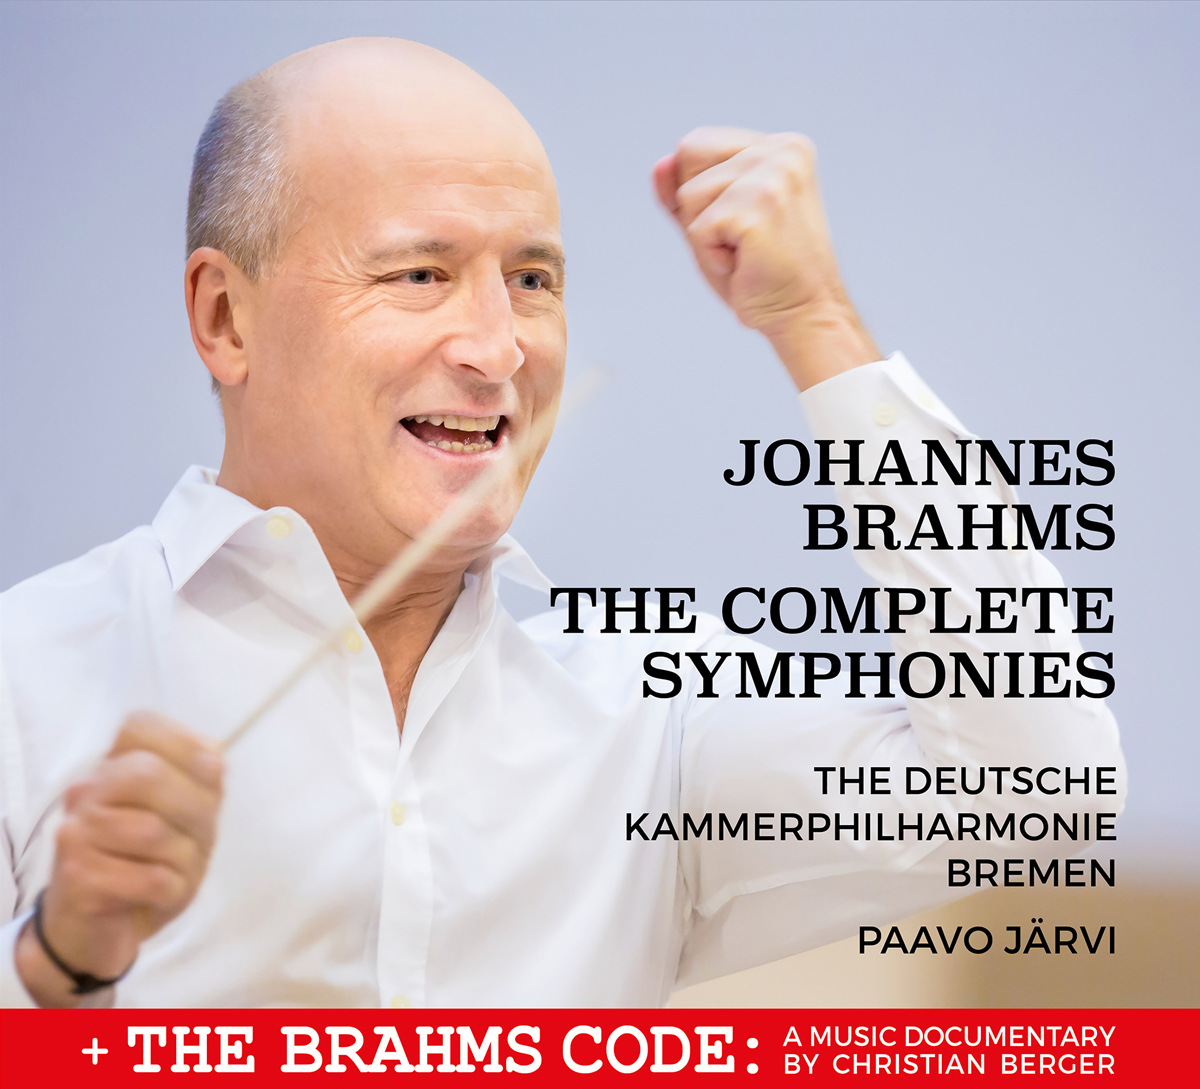 Brahms Symphonies DVD/BluRay cover